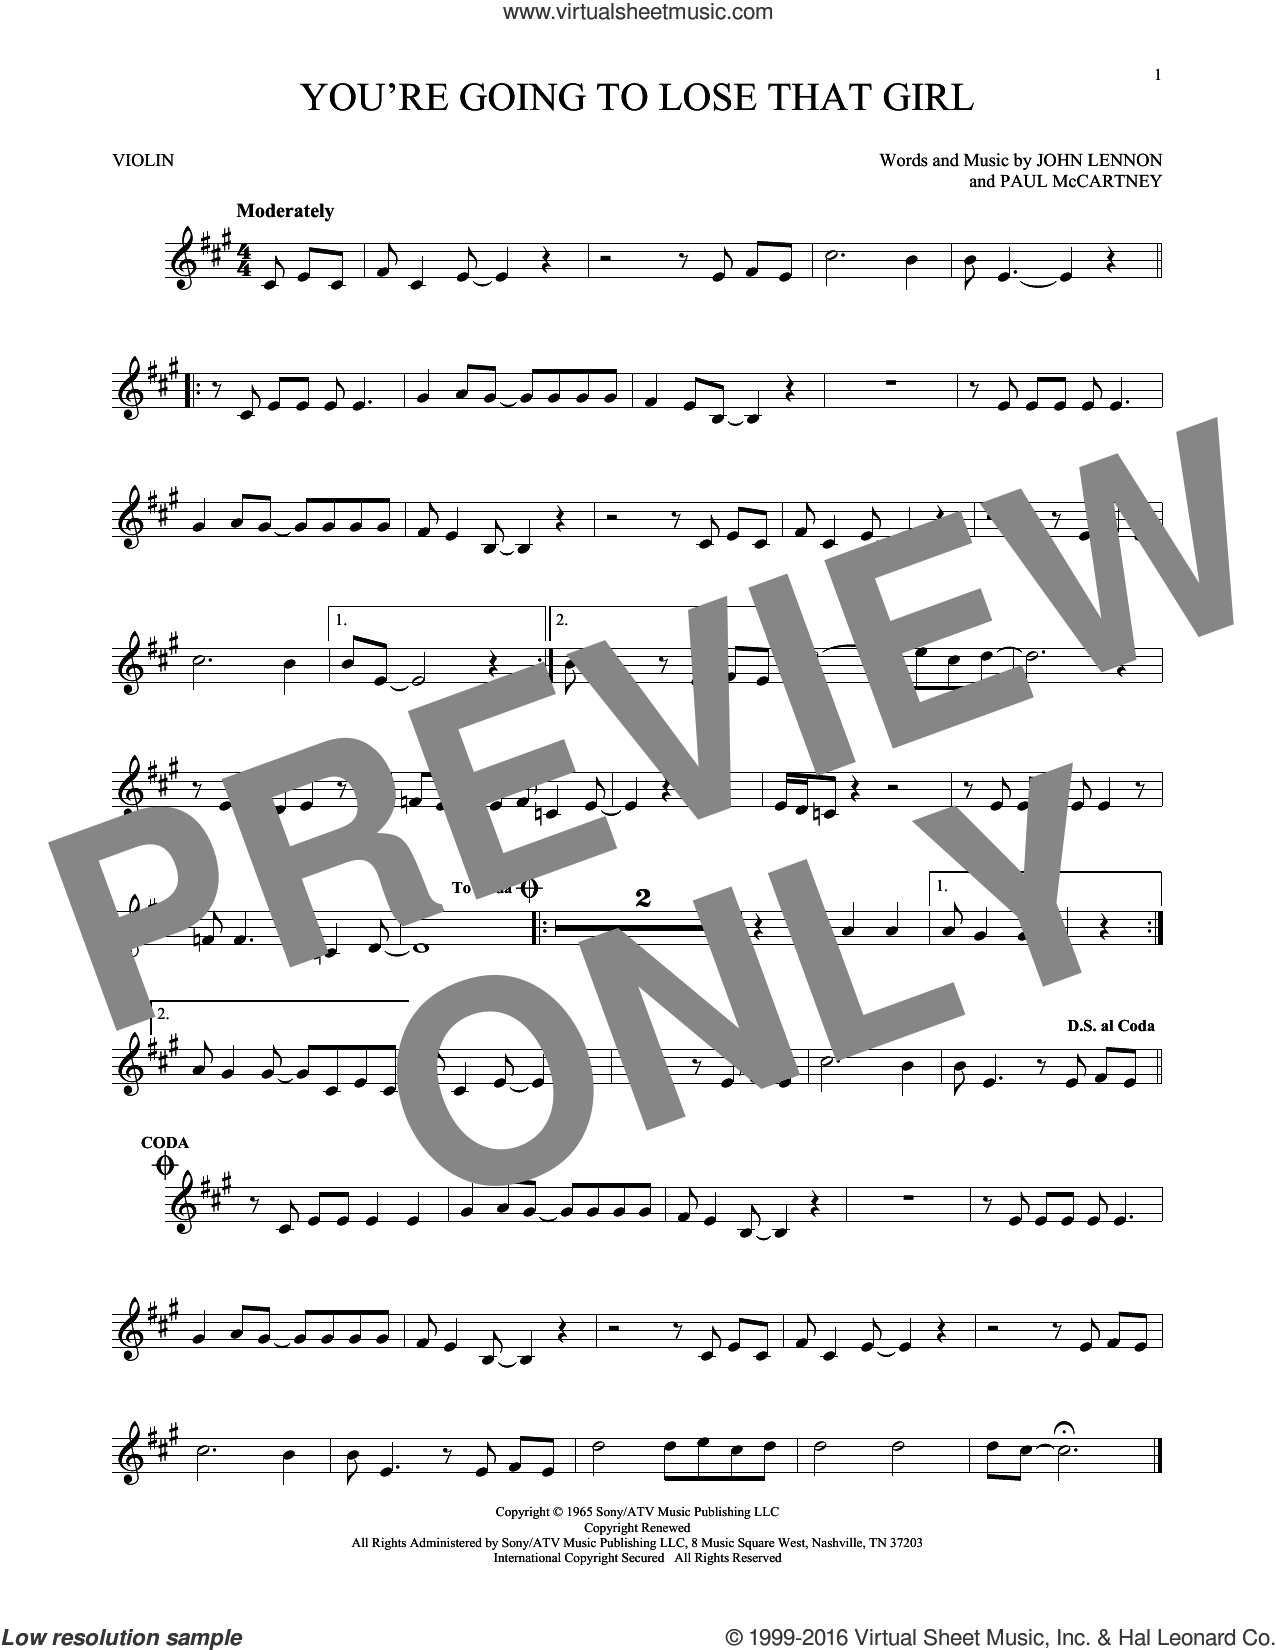 You're Going To Lose That Girl sheet music for violin solo by Paul McCartney, The Beatles and John Lennon. Score Image Preview.